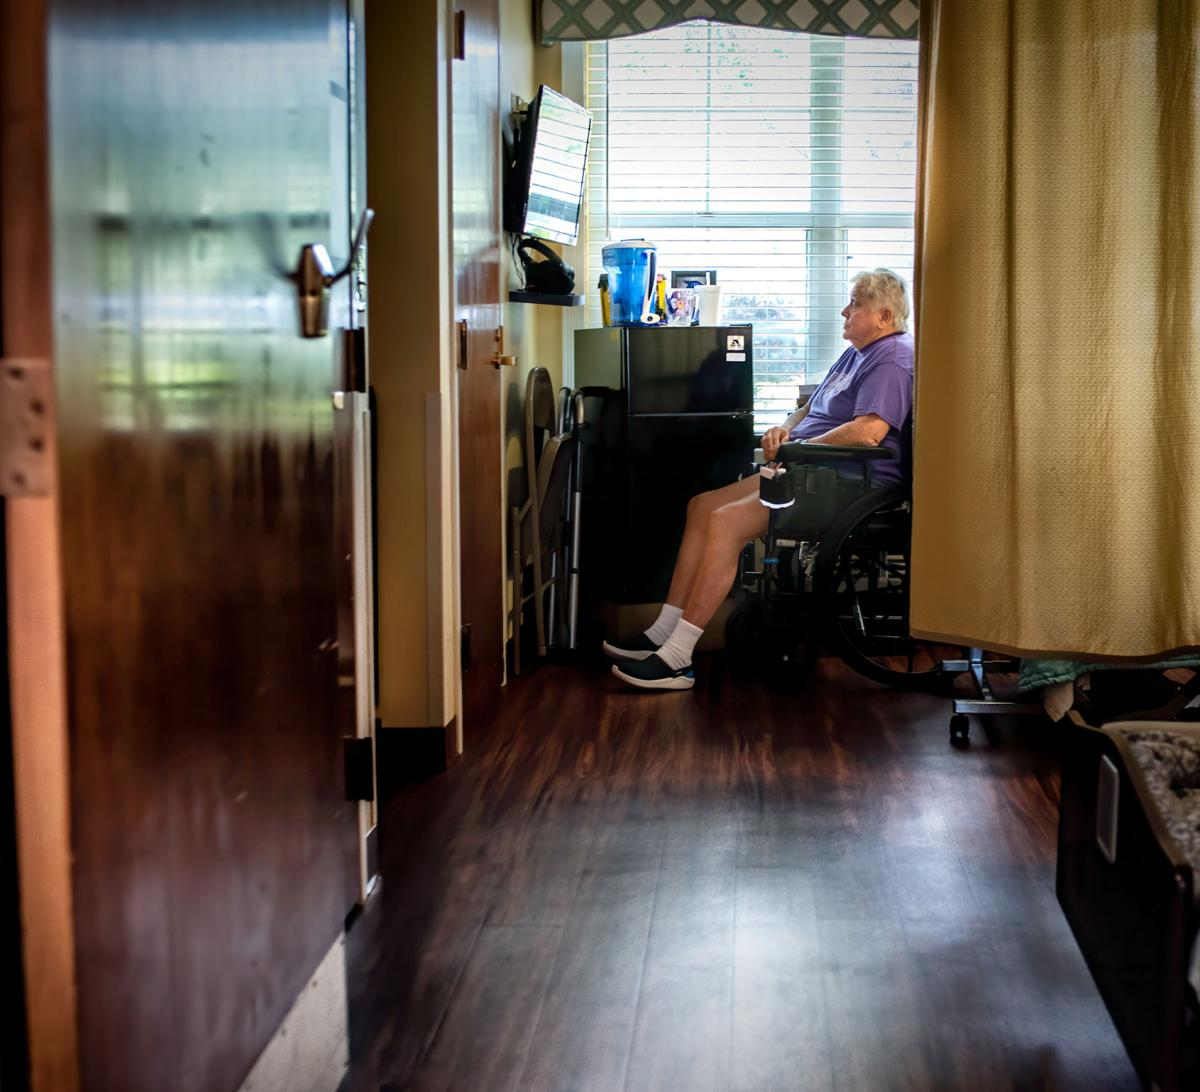 Slowly Meeting Mandates Some Nursing Homes Assisted Living